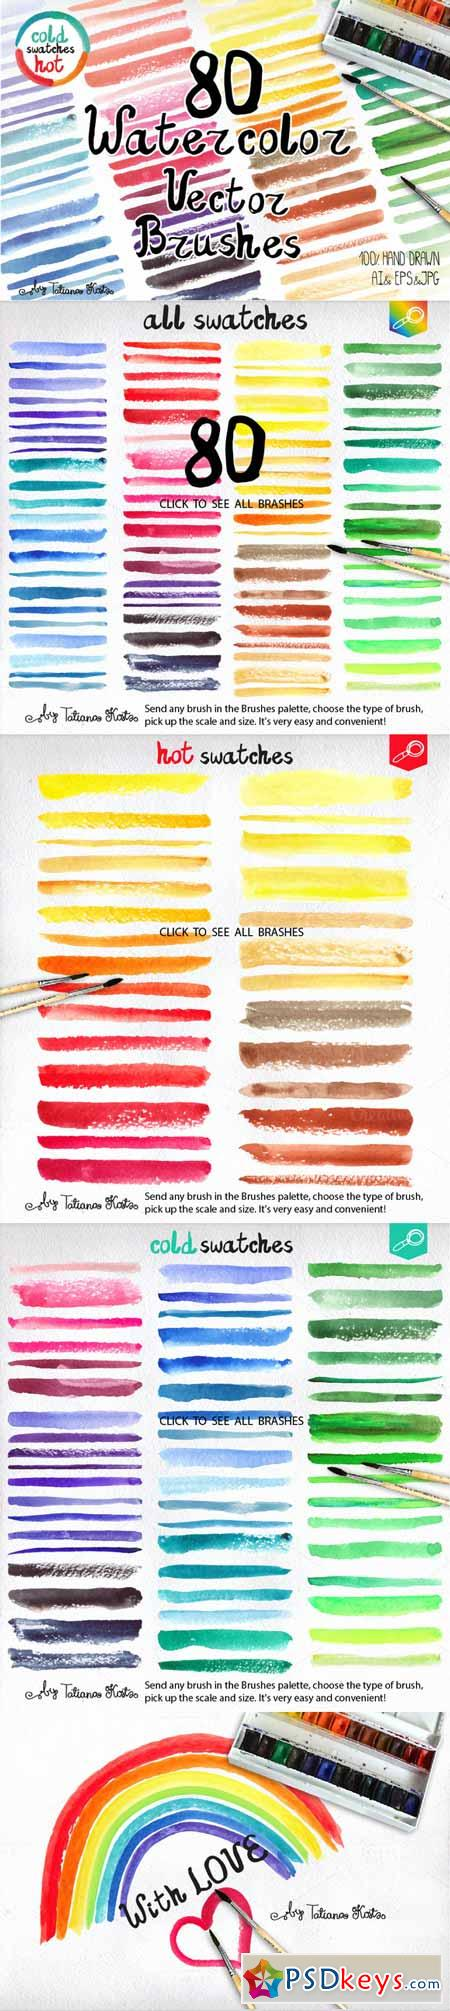 80 Watercolor Vector brushes 362349